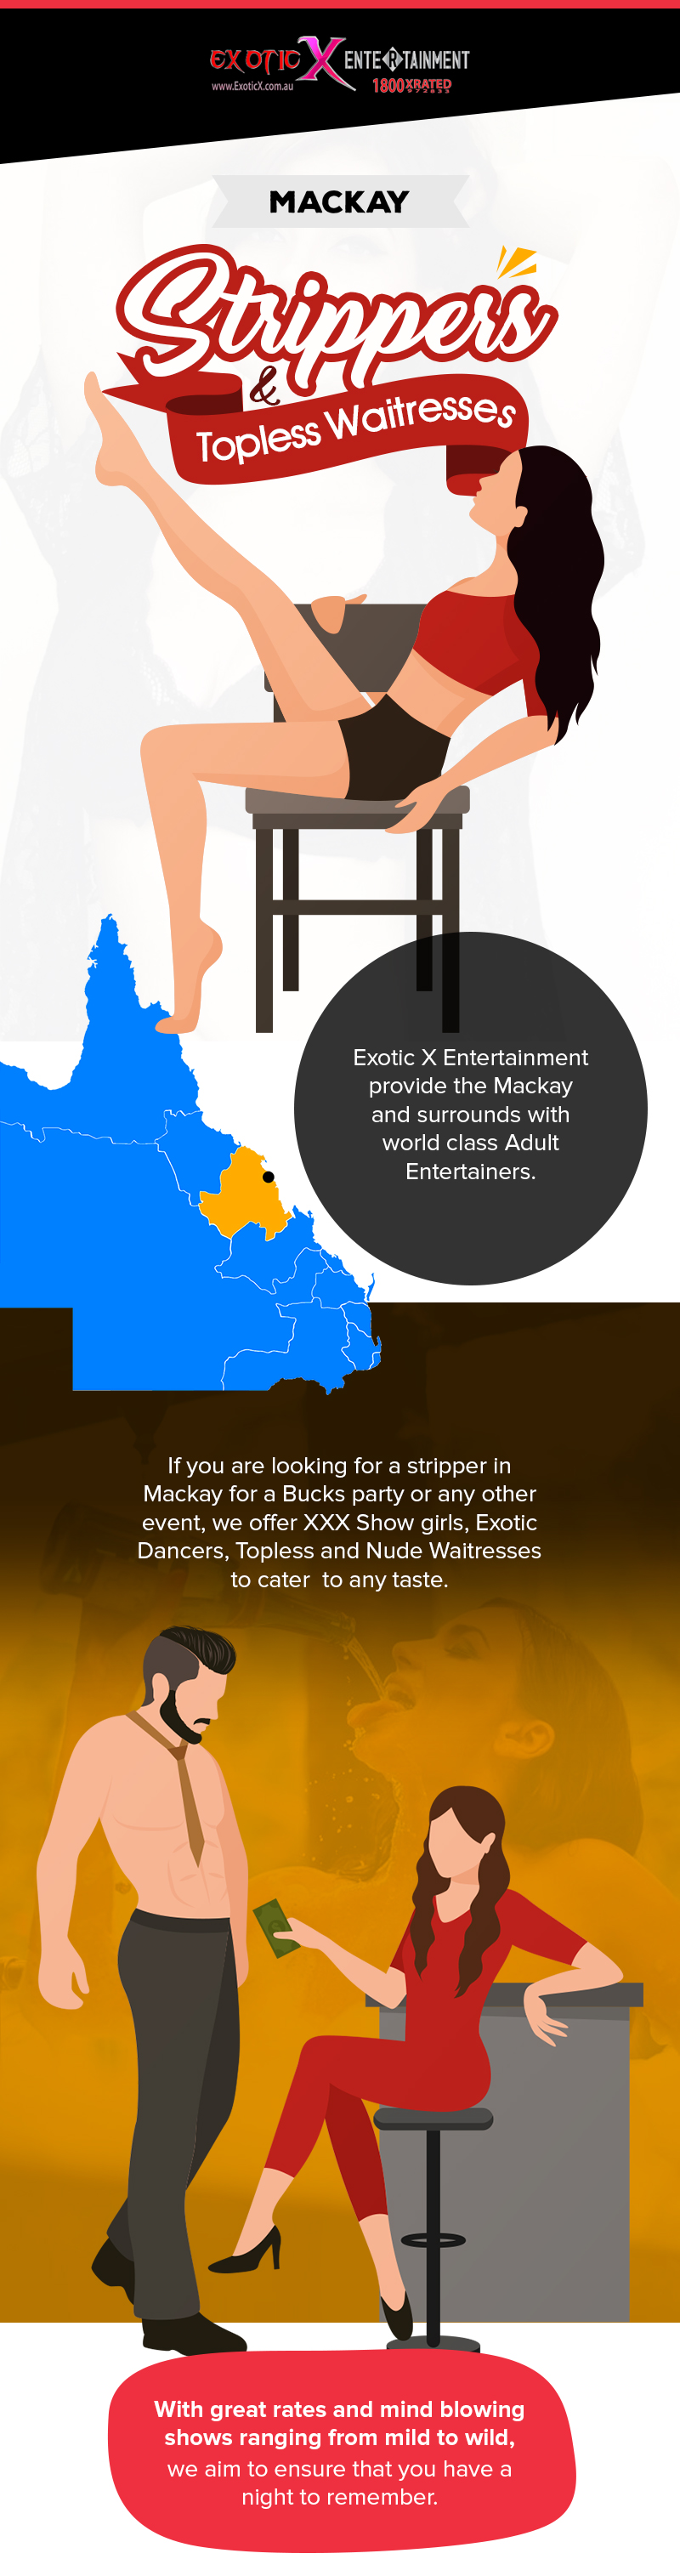 Choose EXE to Hire Strippers & Topless Waitresses in Mackay